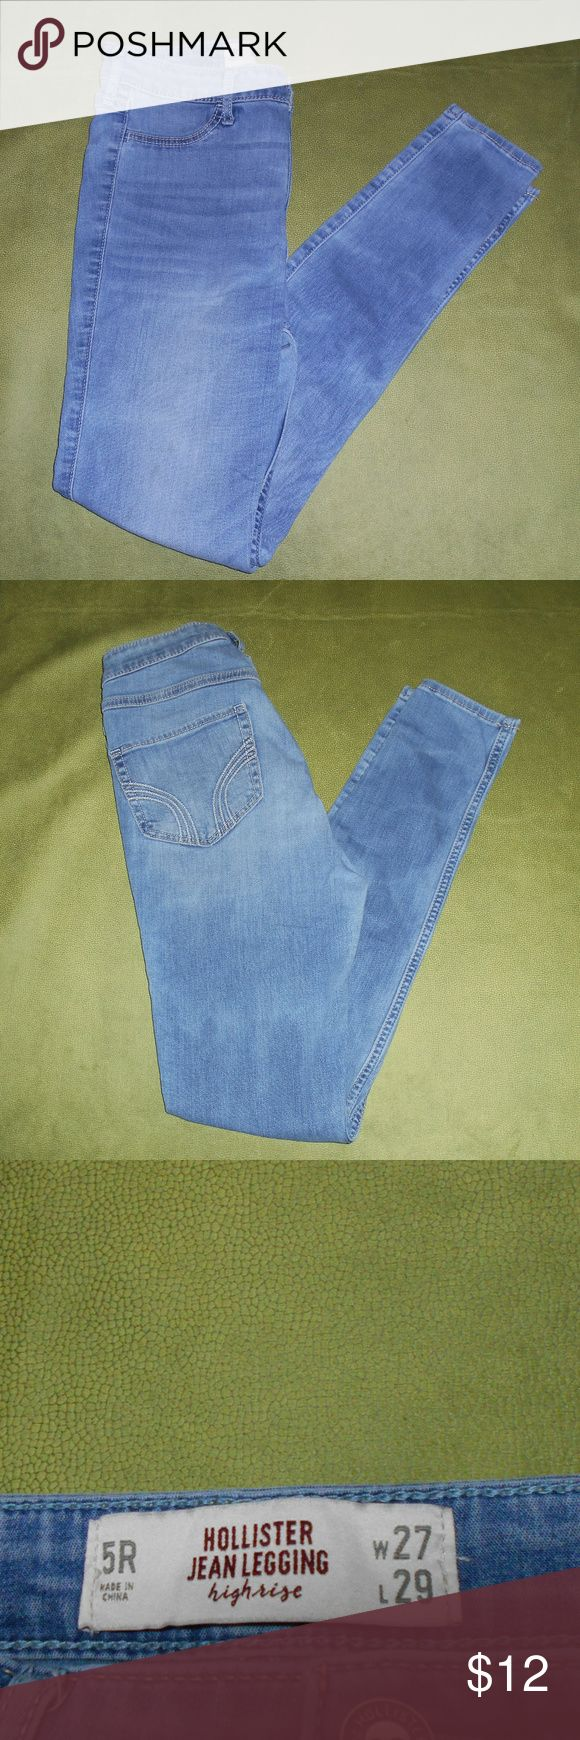 Hollister Legging Jeans 5R Hollister Jean Legging high rise.  Size 5R- waist 27- length 29.  Made from  66% Cotton--18% Viscose--14% Polyester--2% Elastane.  Good condition. Hollister Jeans